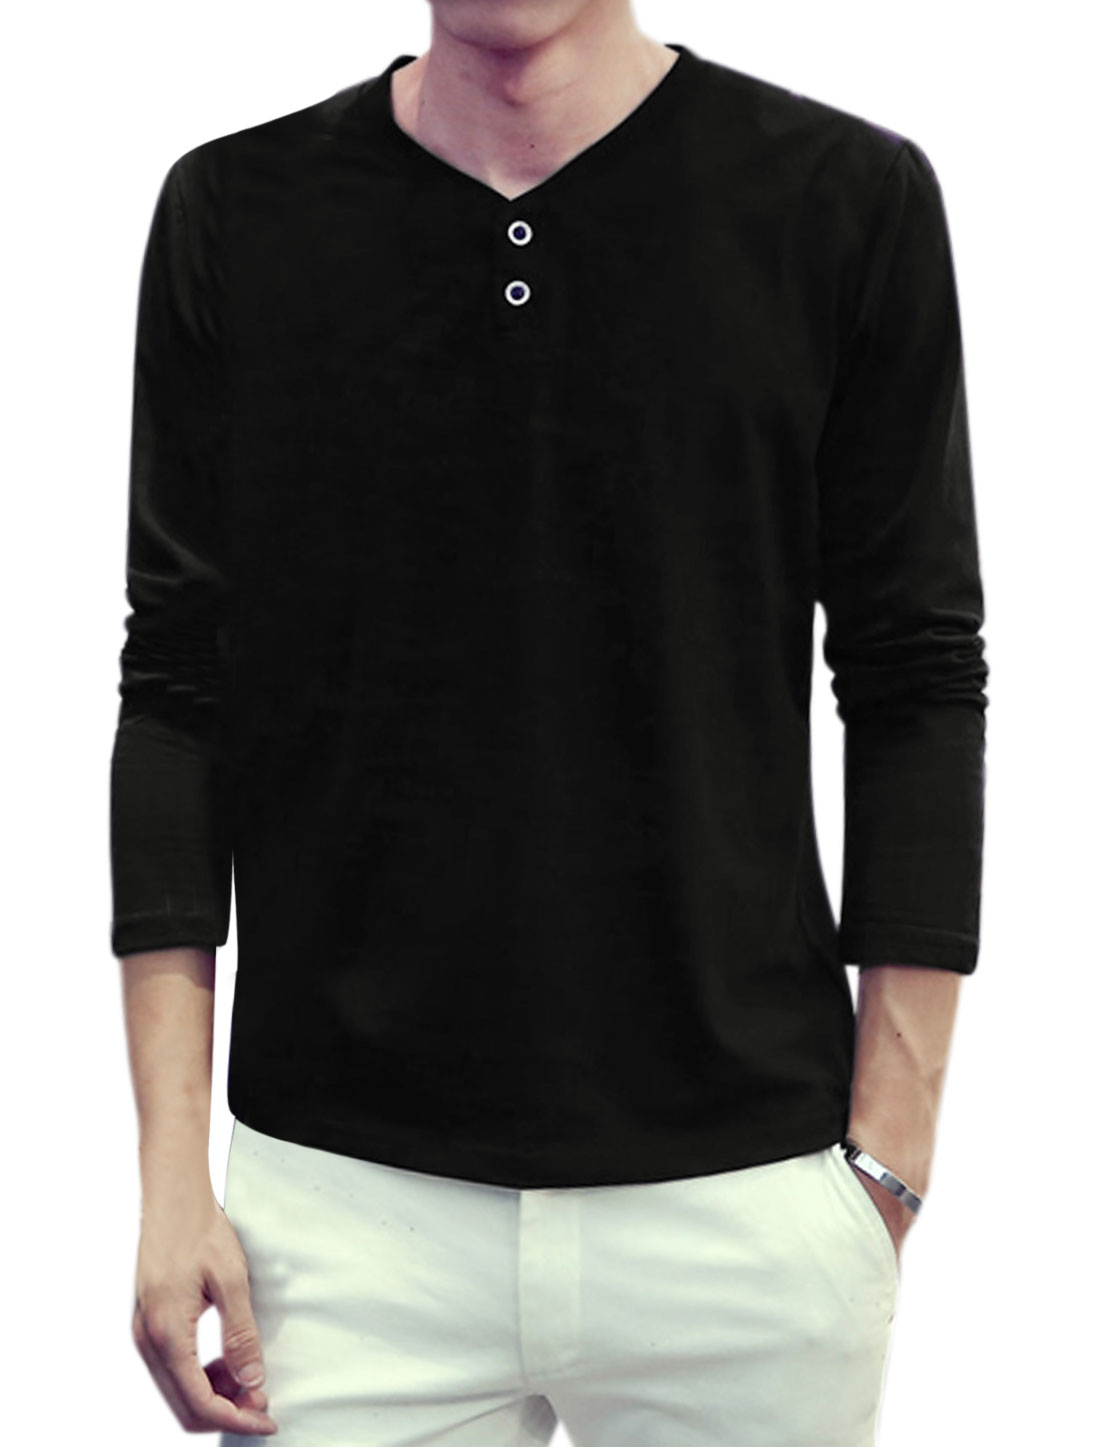 Men Y Neck Long Sleeves Slim Fit T-Shirt Black S